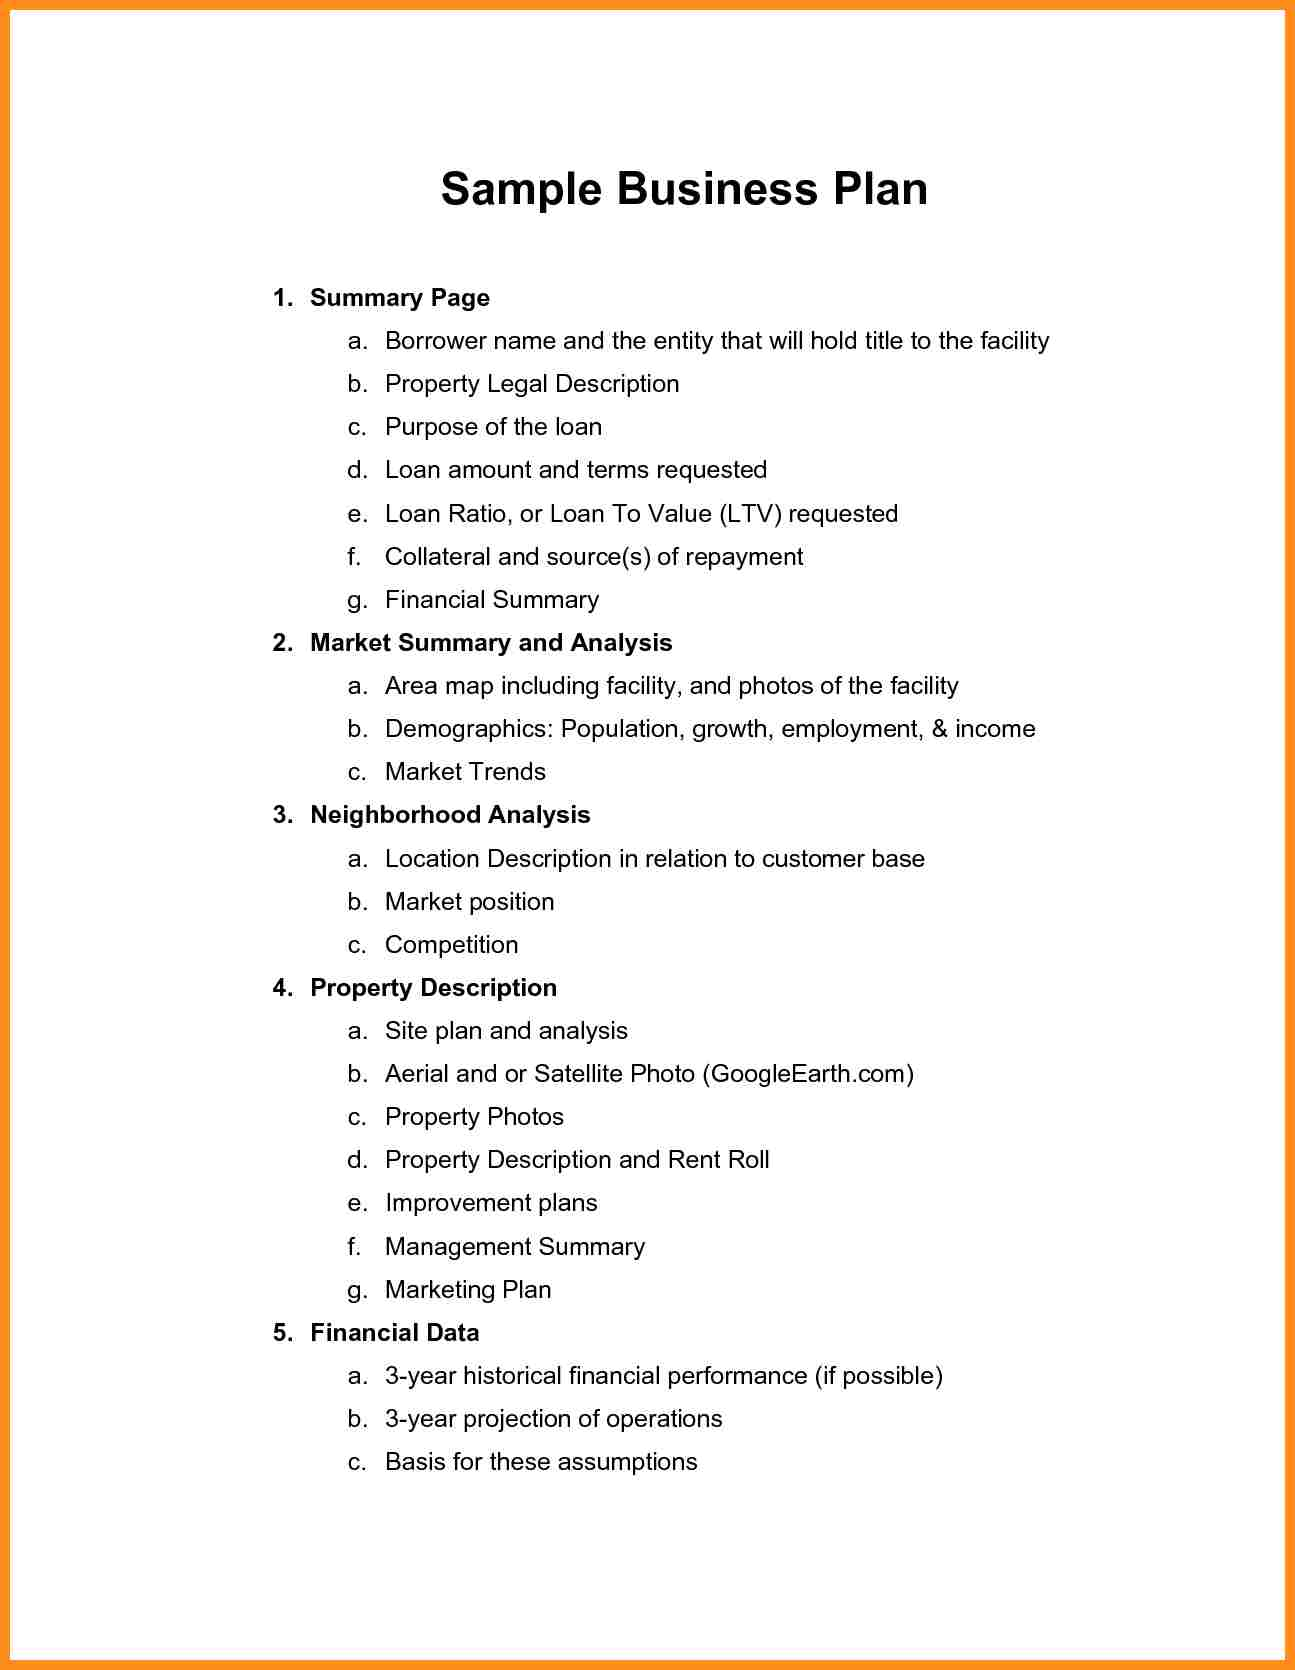 021 Research Paper Parts Of And Its Definition Pdf Business Plan Examples Free Resume Sba Template W Introduction Presentation Explained Executive Summary Staggering A Full